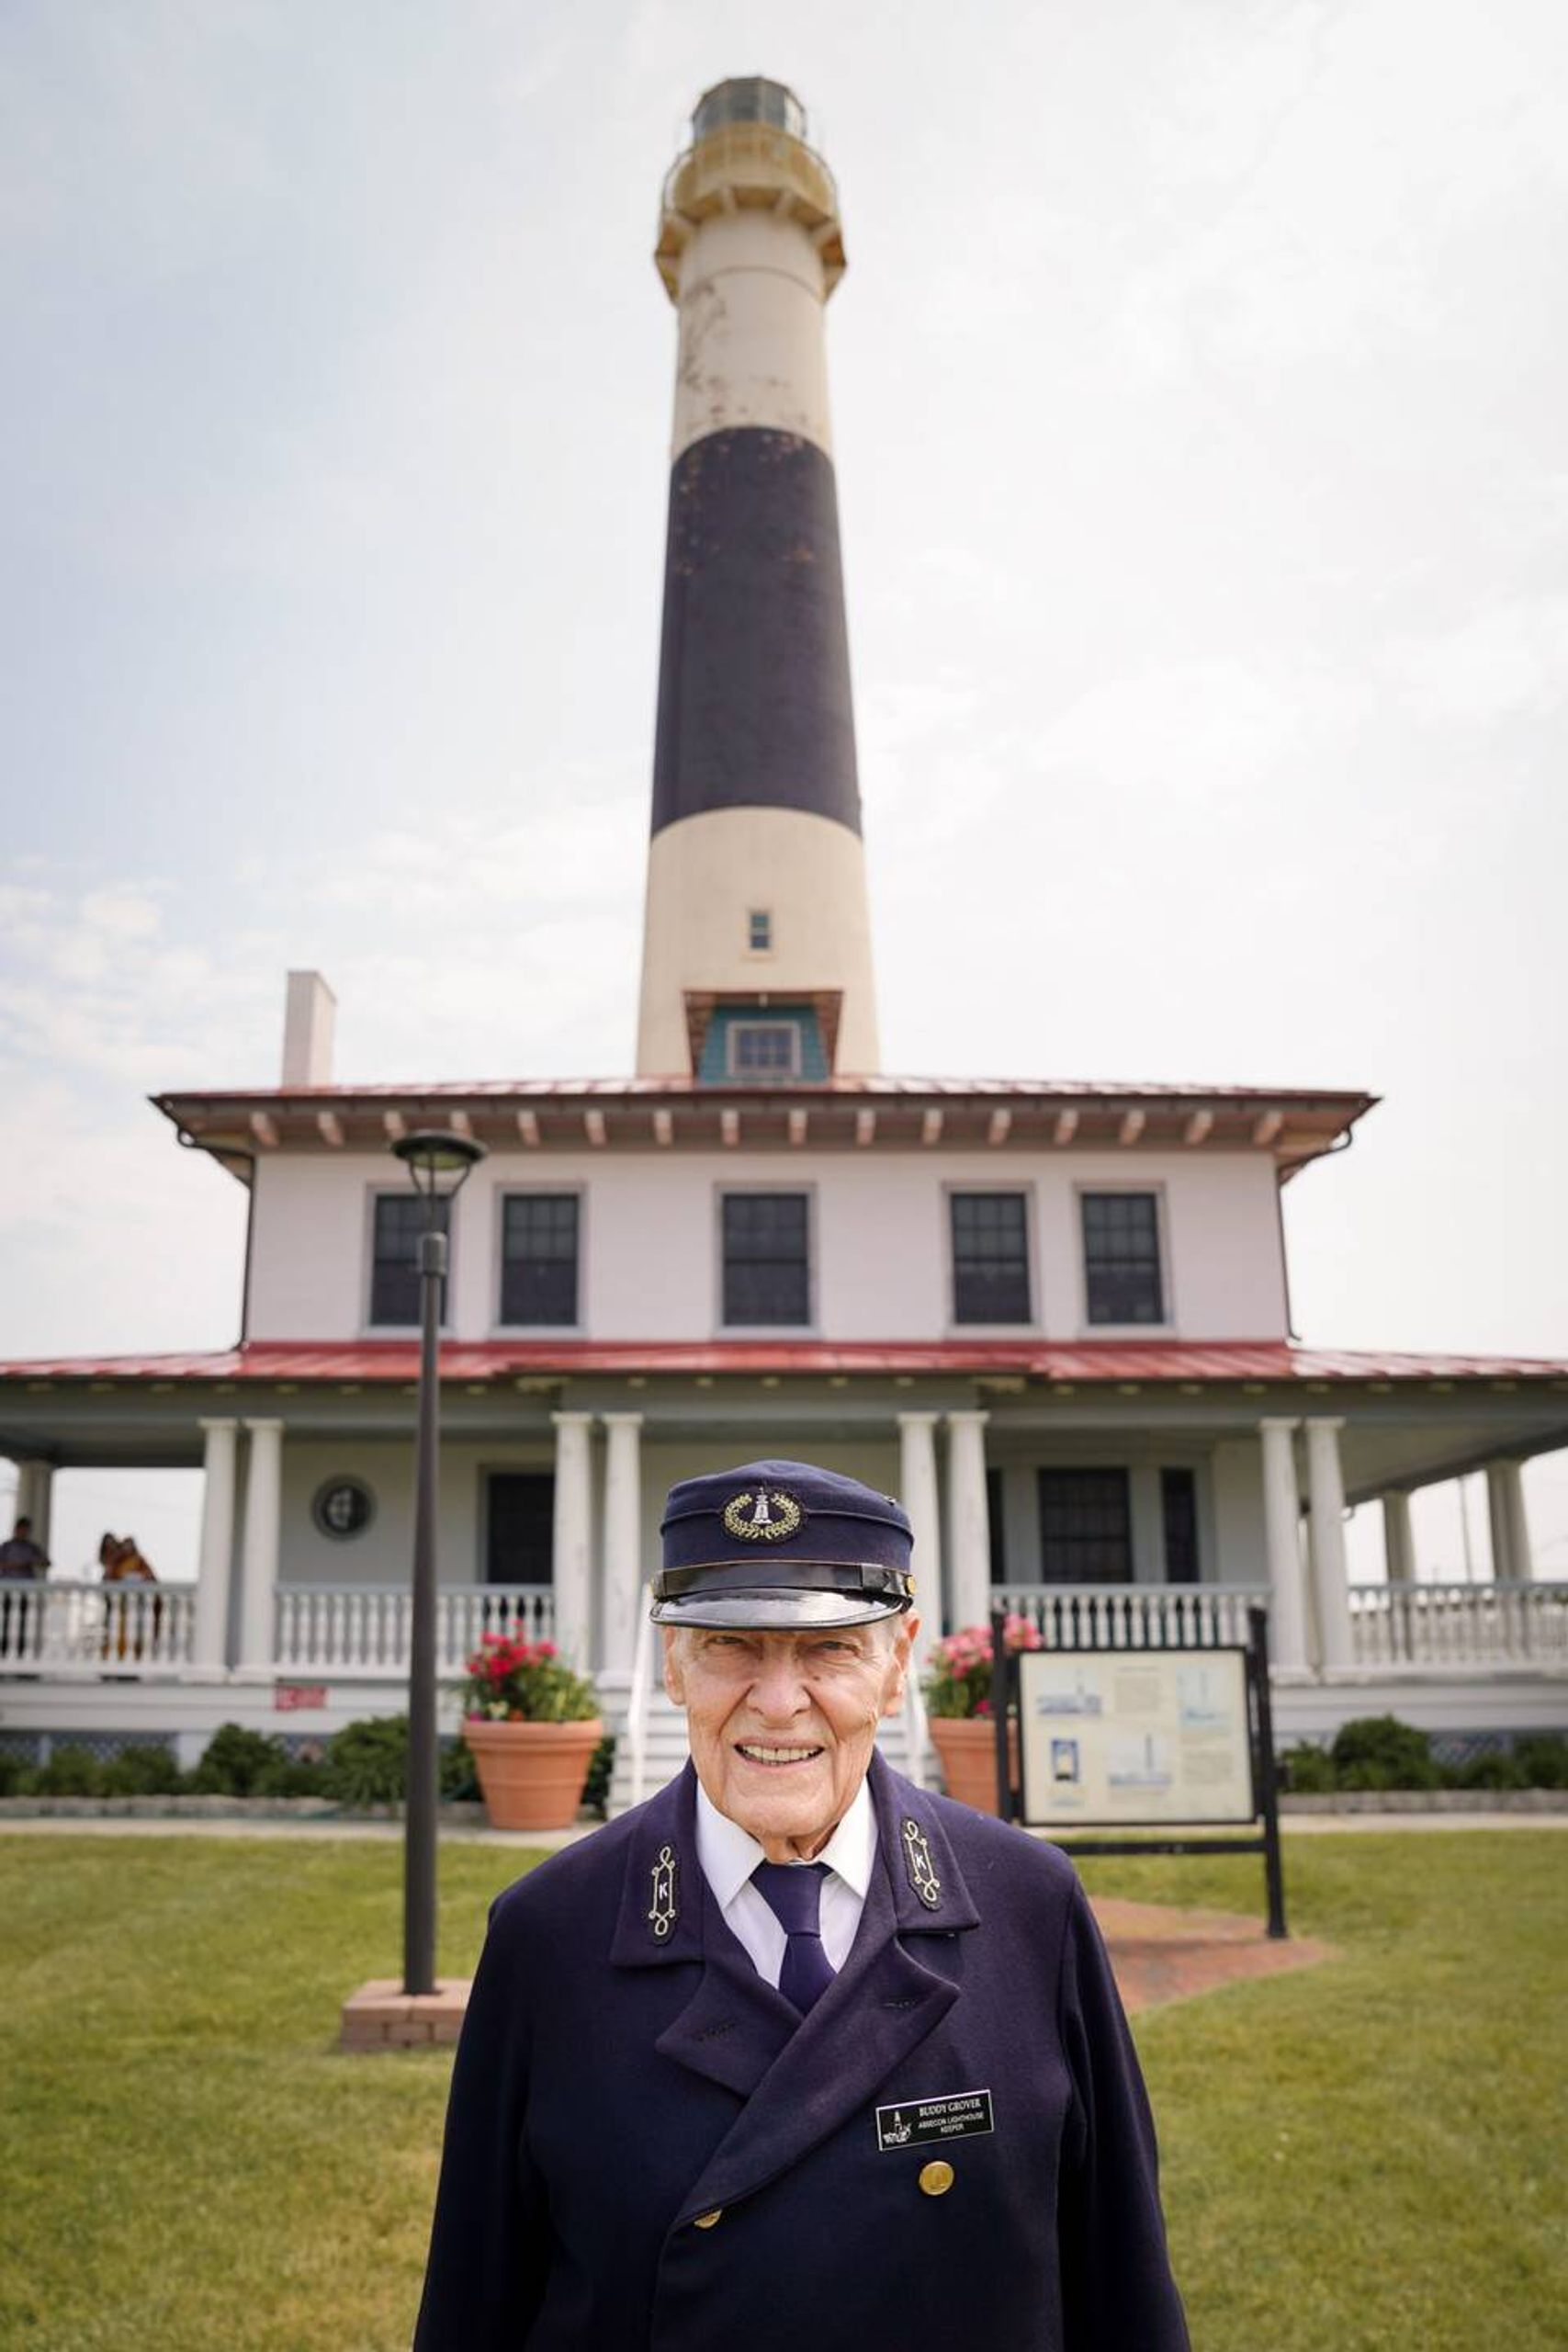 Photo of an older man in a blue uniform and hat, standing in front of a lighthouse. Life, elders, Rewire, PBS, our future